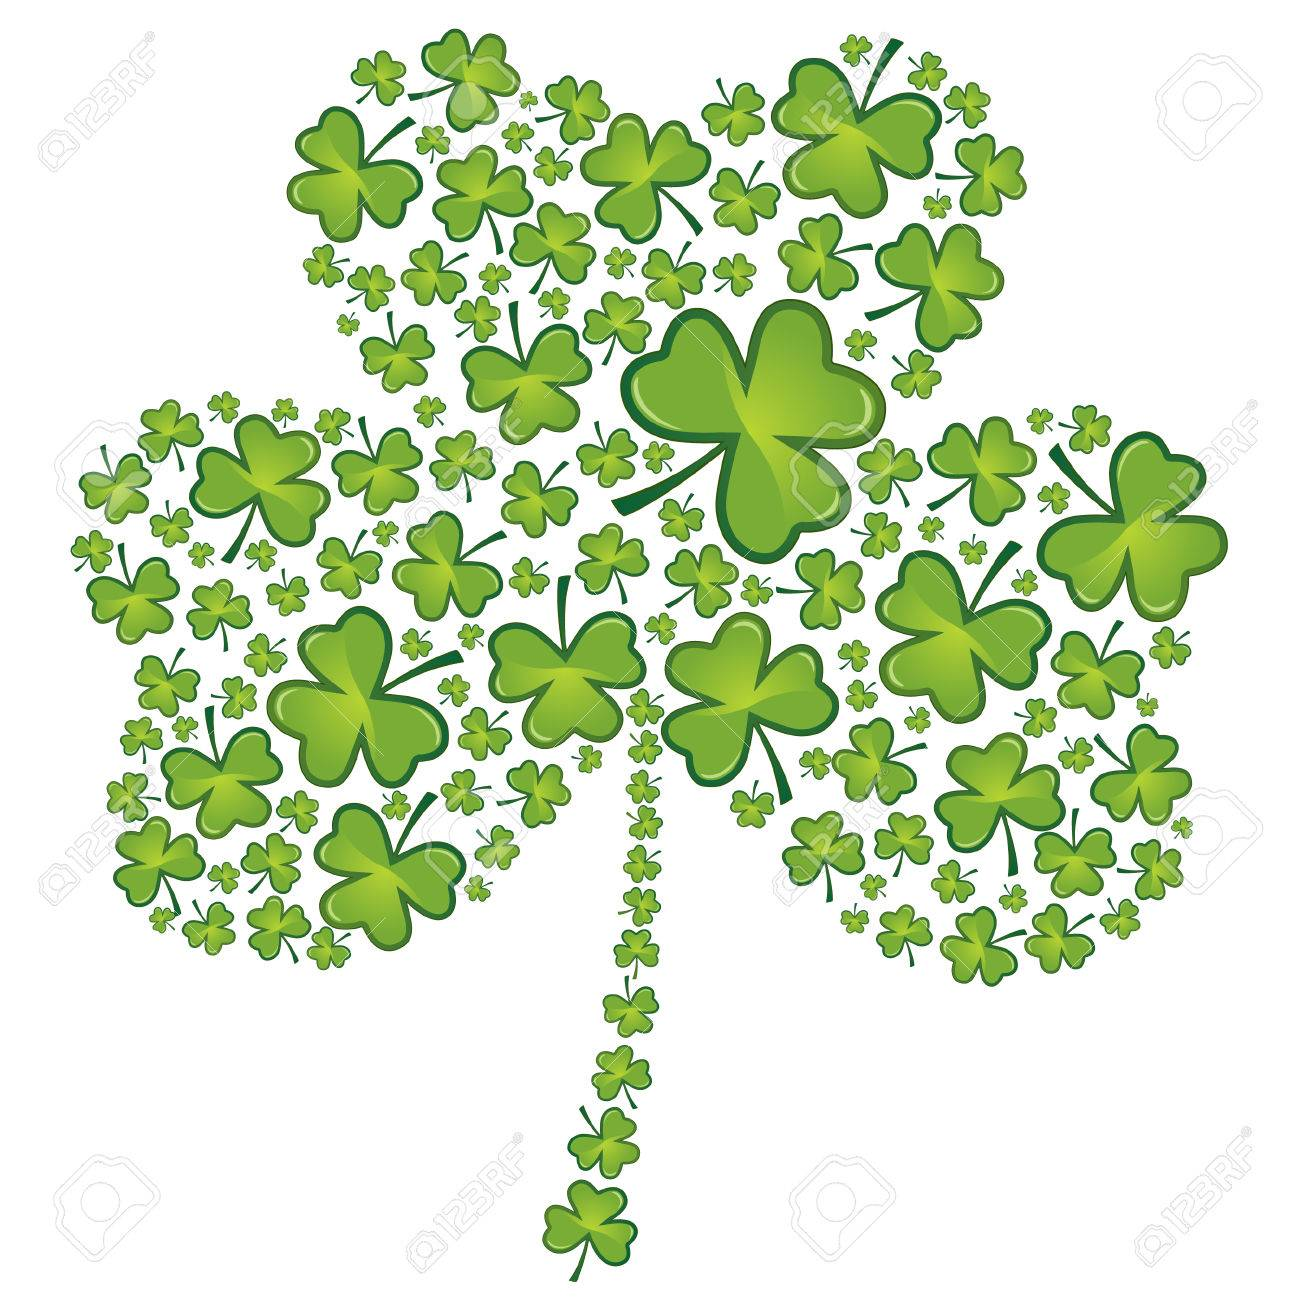 st patrick s day shamrock pattern royalty free cliparts vectors